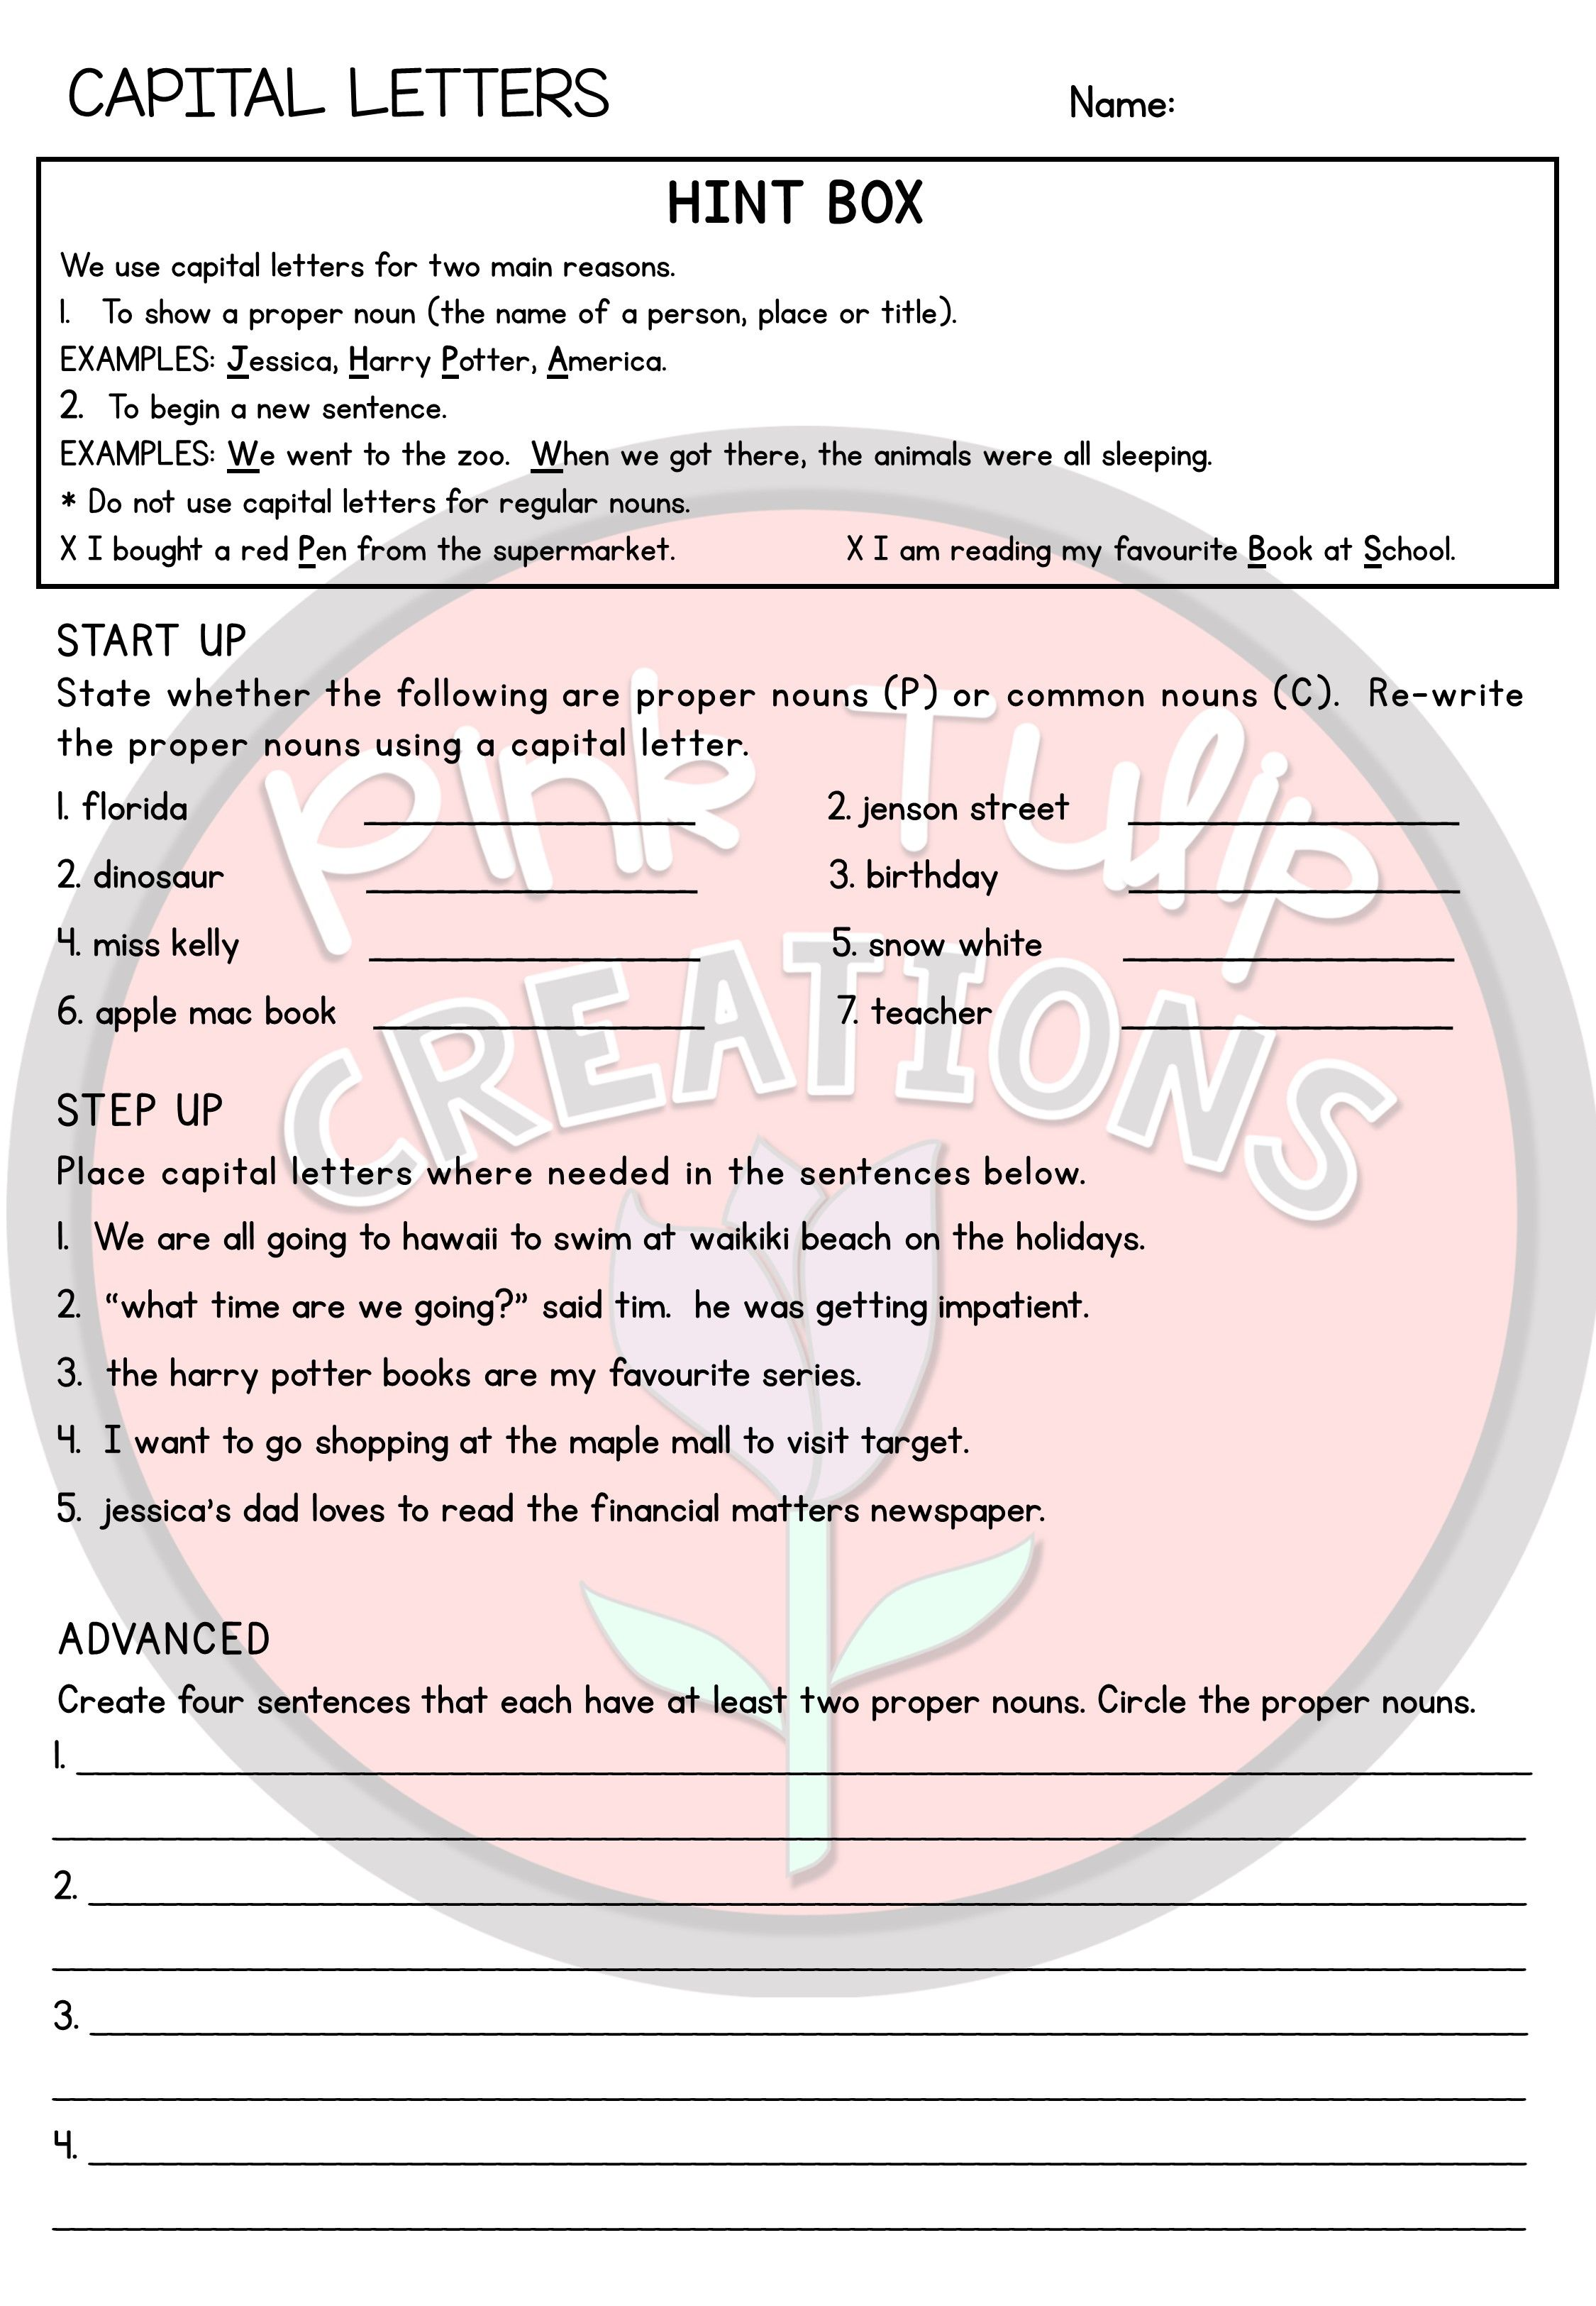 homework booklets printable